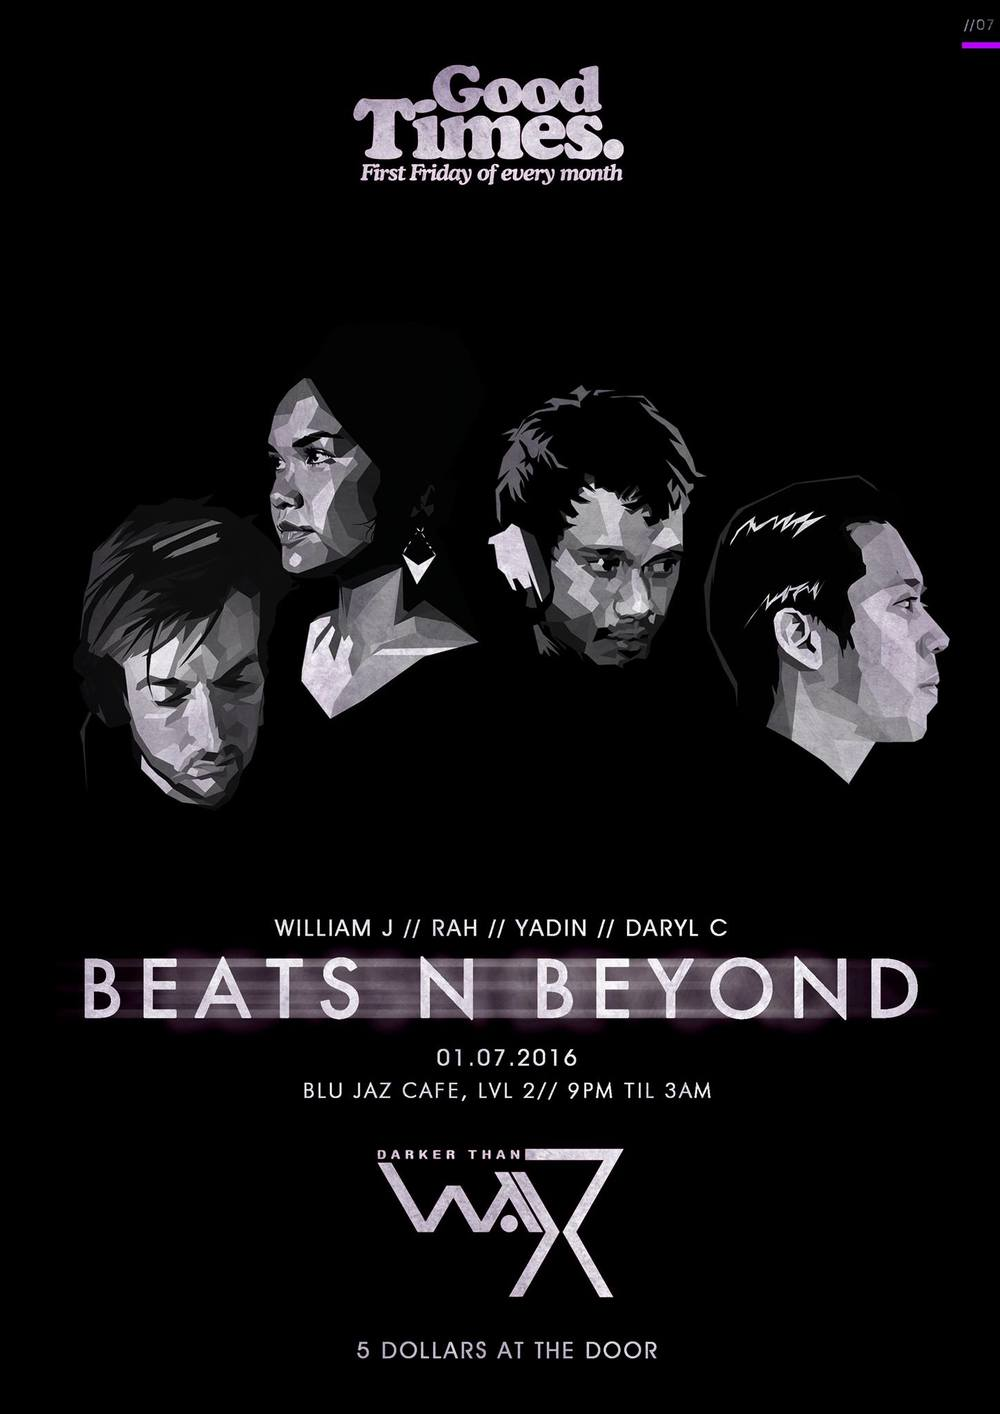 That time again! We are back with the quarterly 'BEATS N BEYOND' with our fav homies GOOD TIMES. Blu Jaz is the venue, c u there.